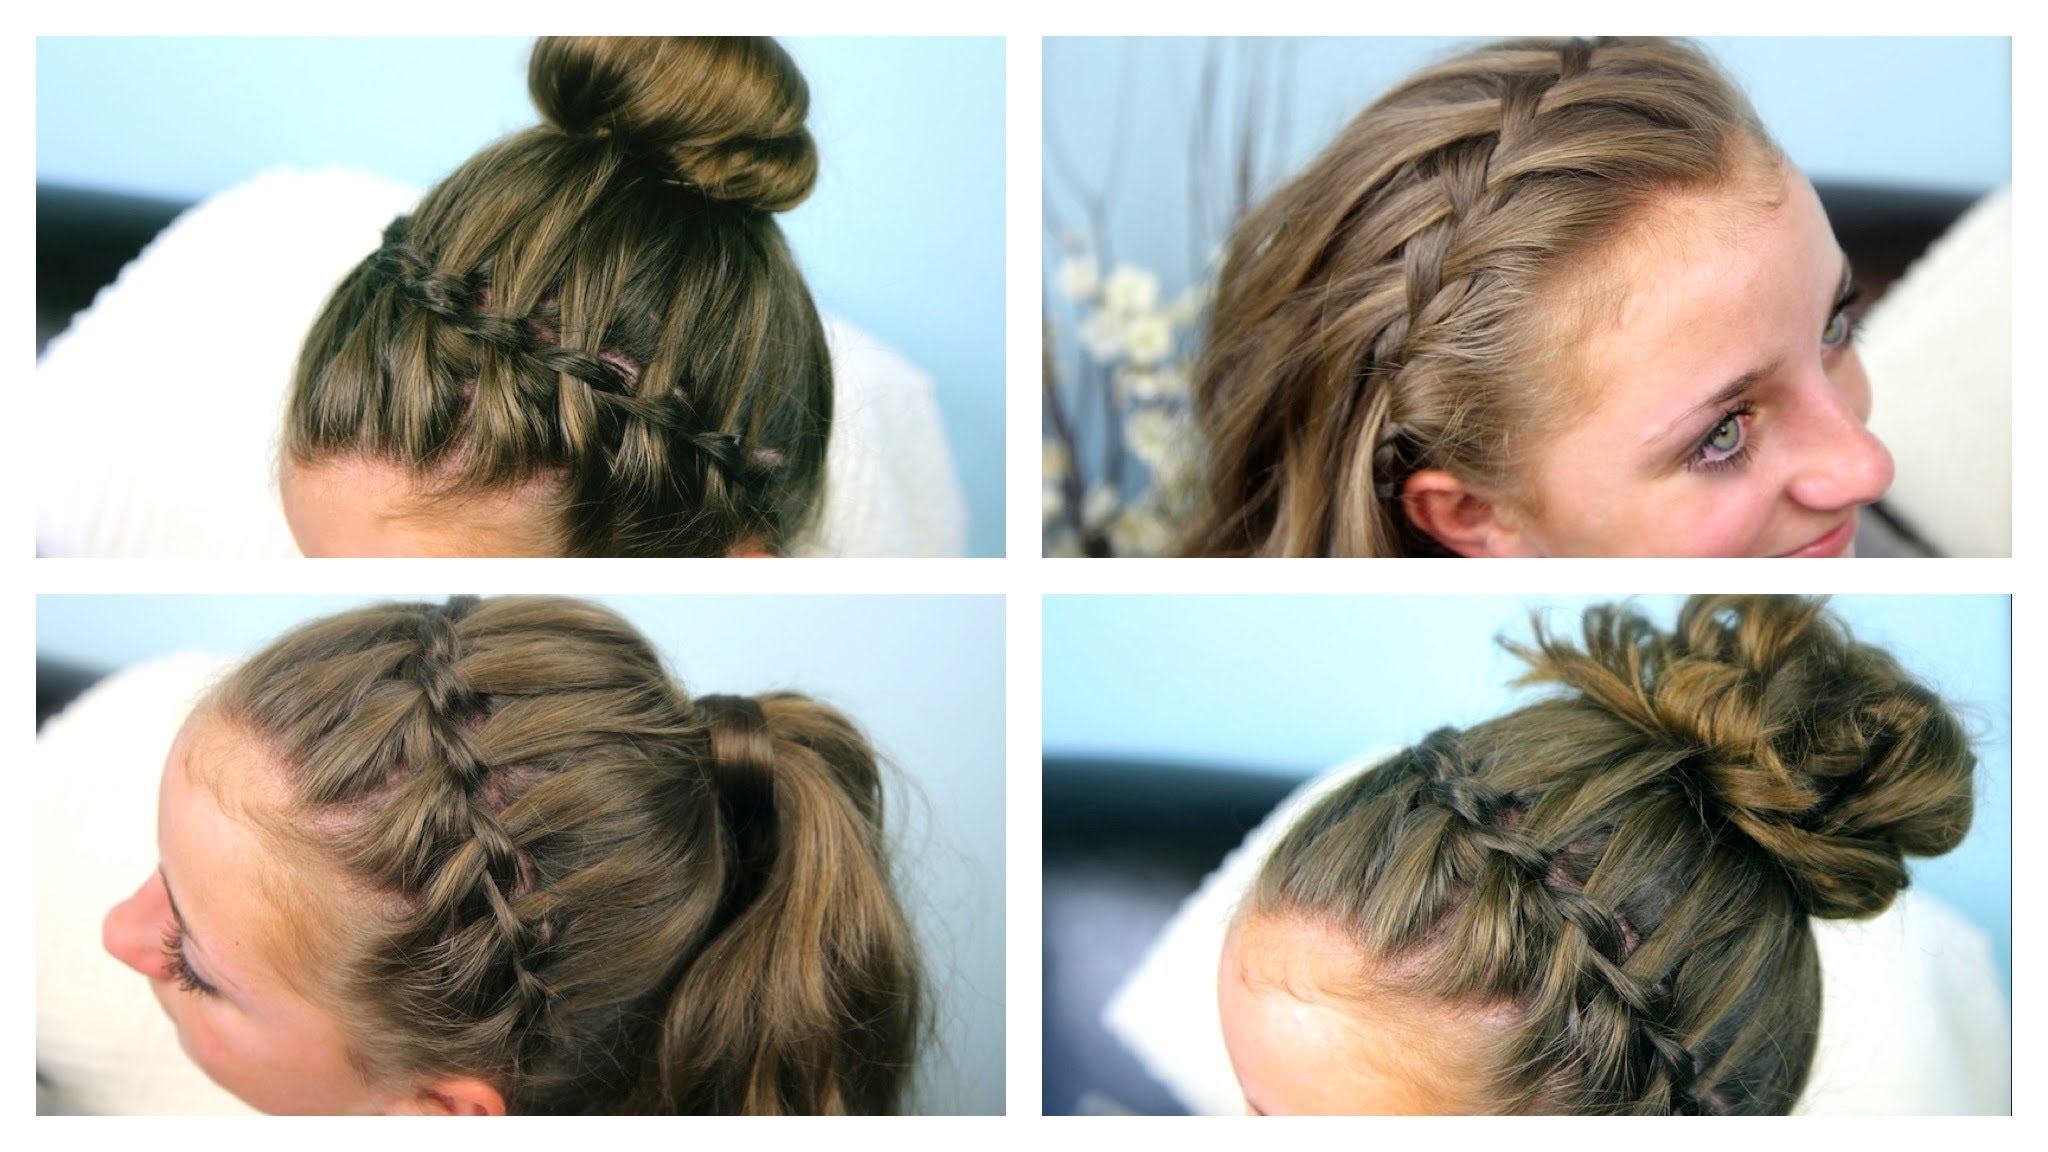 Most Popular High Waterfall Braided Hairstyles Inside Adorable Formal Hairstyle For Kids, The Waterfall Braid (View 16 of 20)